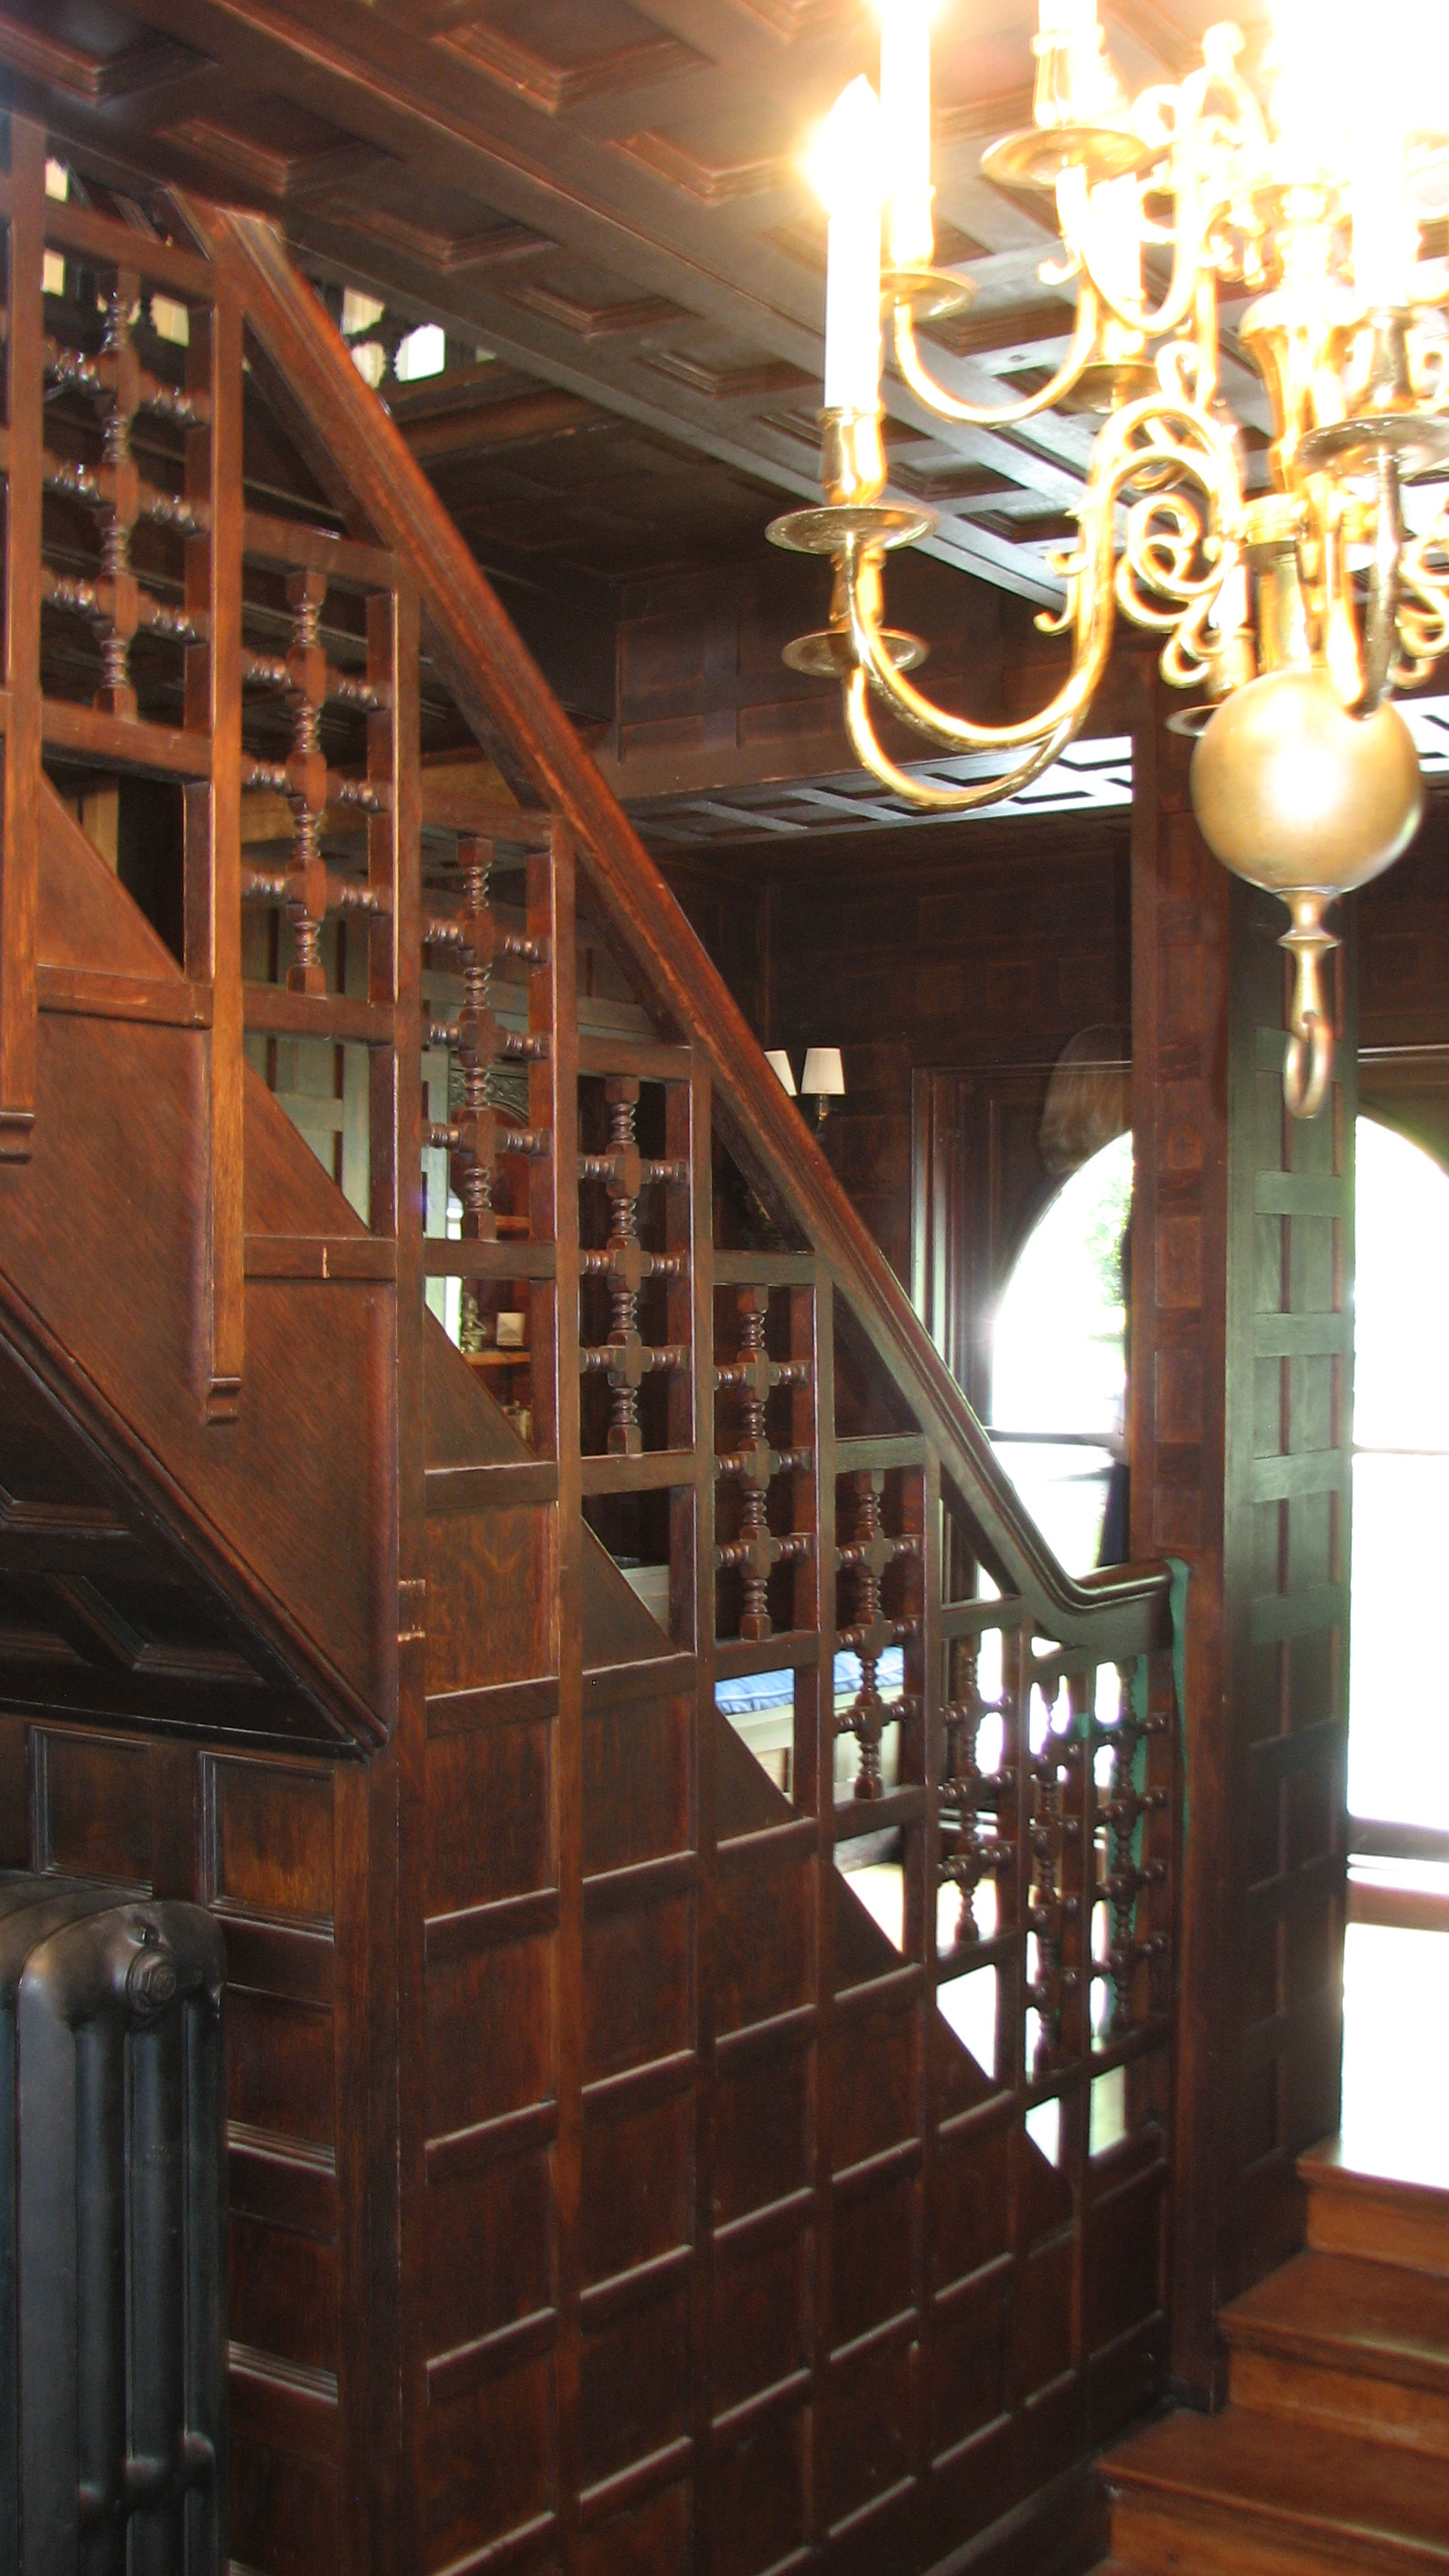 Interior details include a grand staircase and carved wood paneling